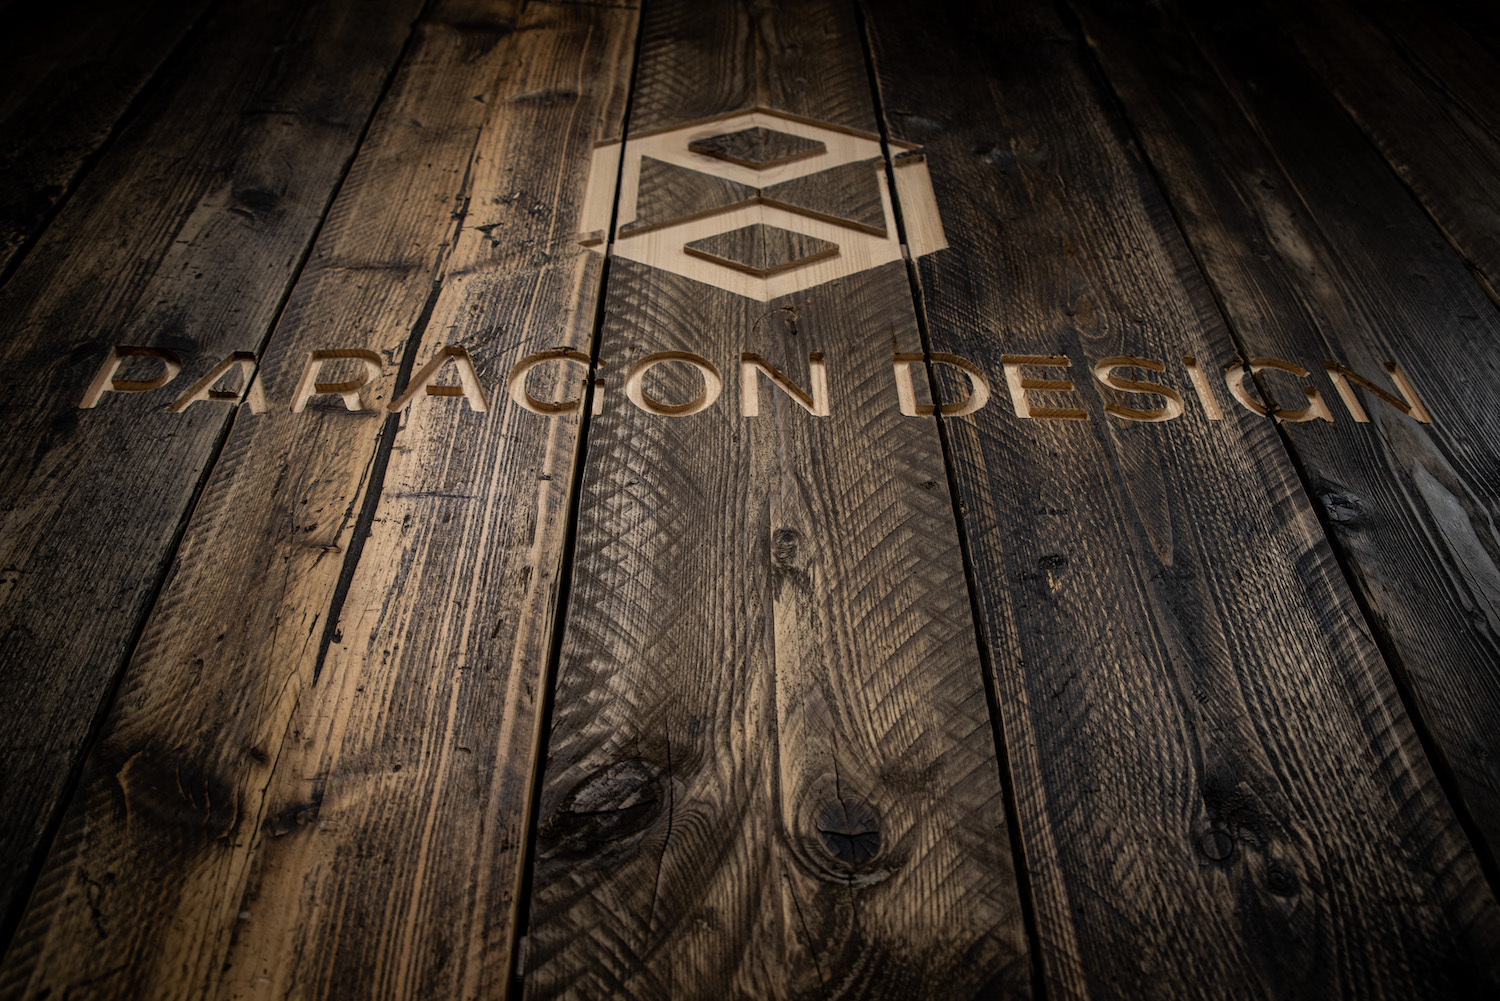 Paragon name on reclaimed timber